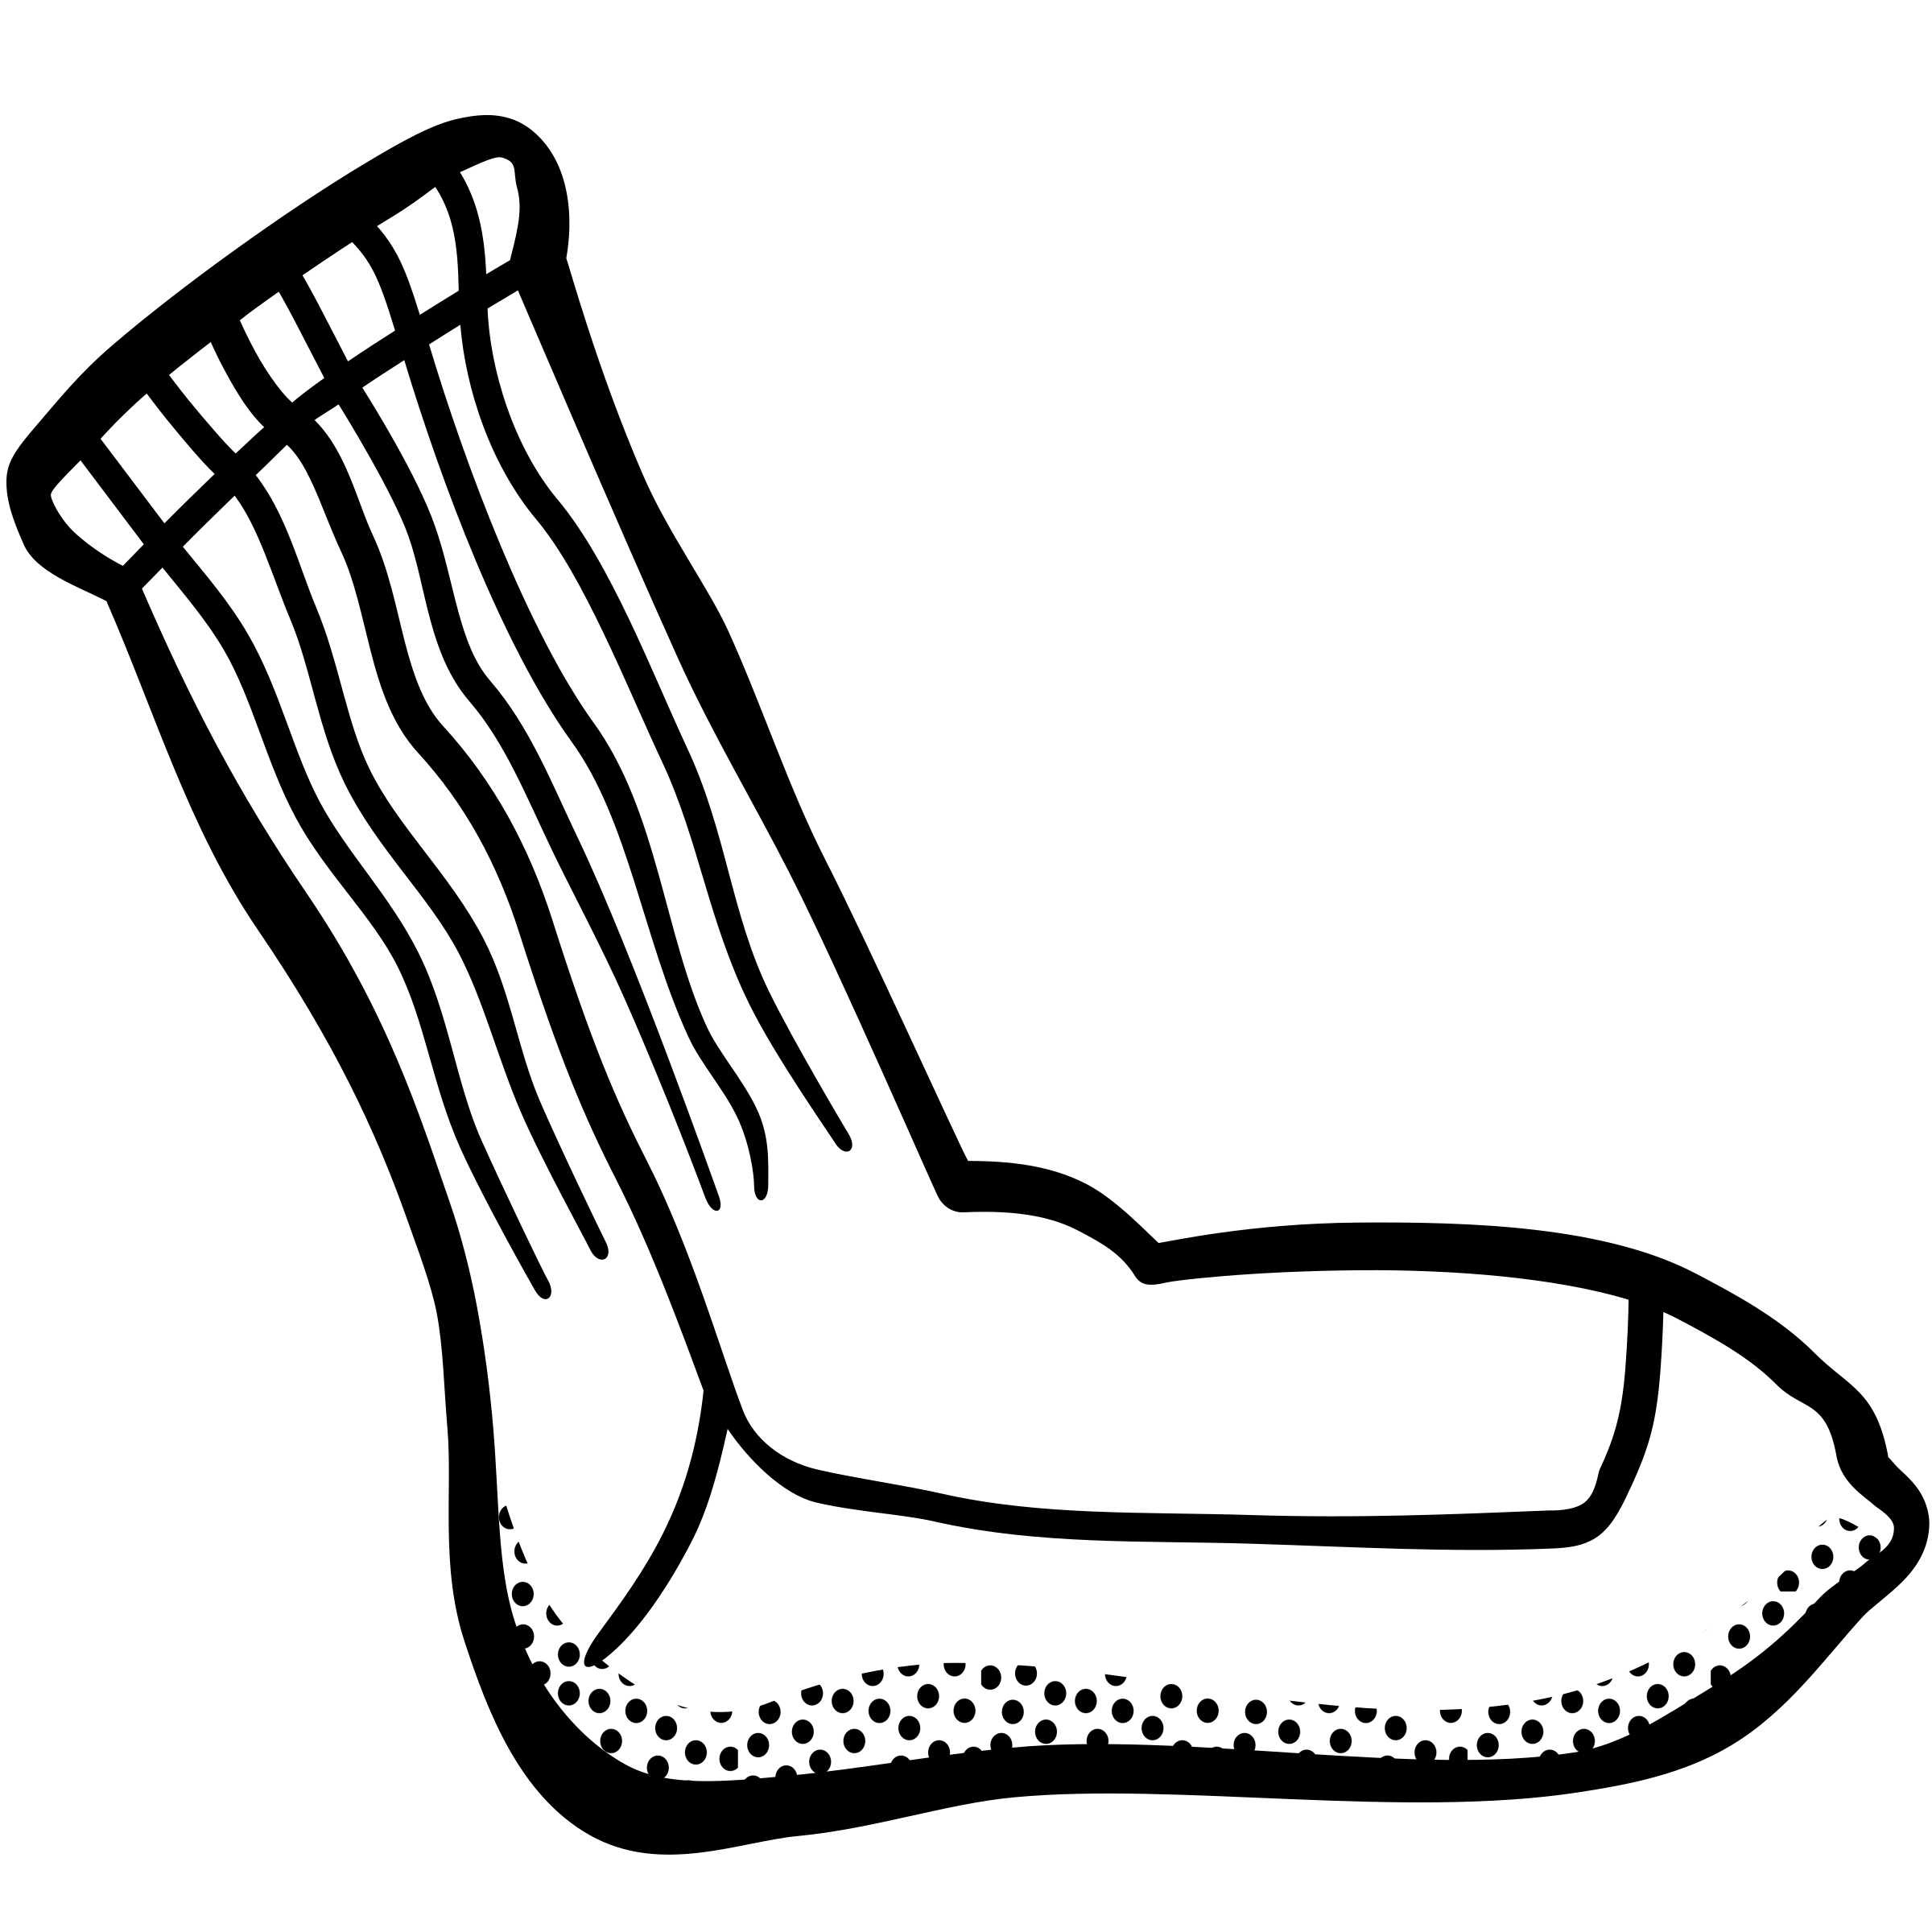 Lineart big image png. Wednesday clipart sock